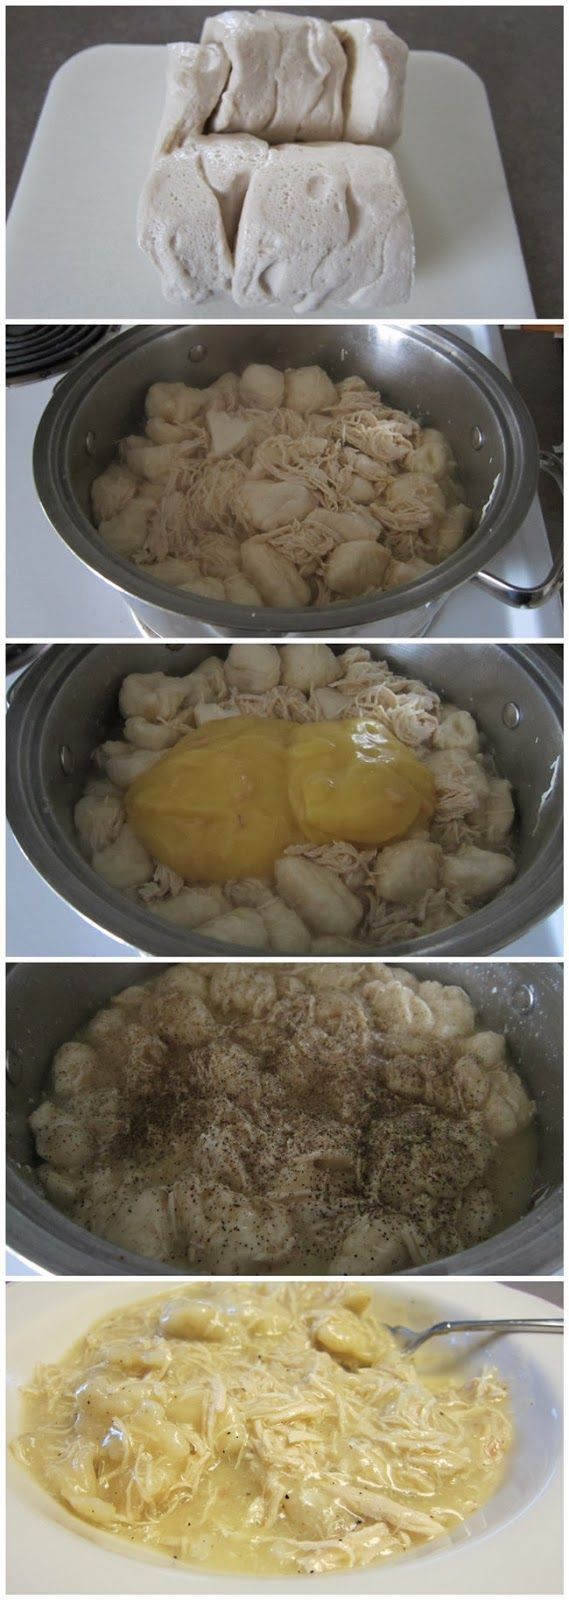 Quick and Easy Chicken and Dumplings. My husband will love this. I find it repulsive. But made from scratch he hates.